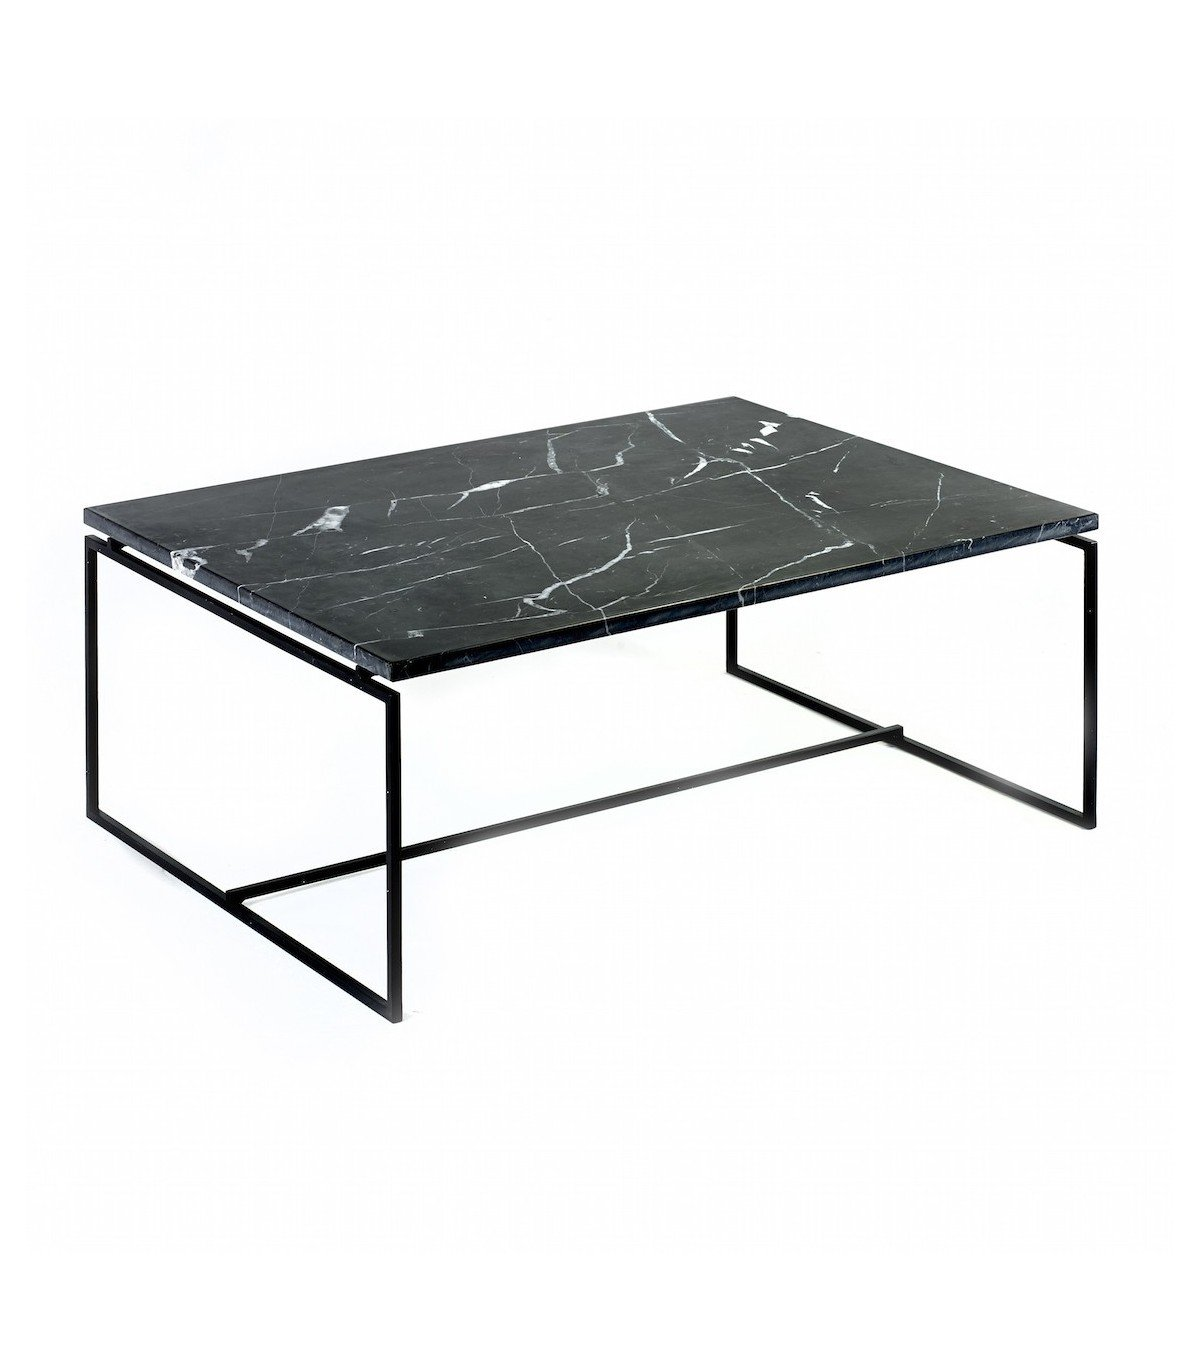 table nero en marbre noir serax